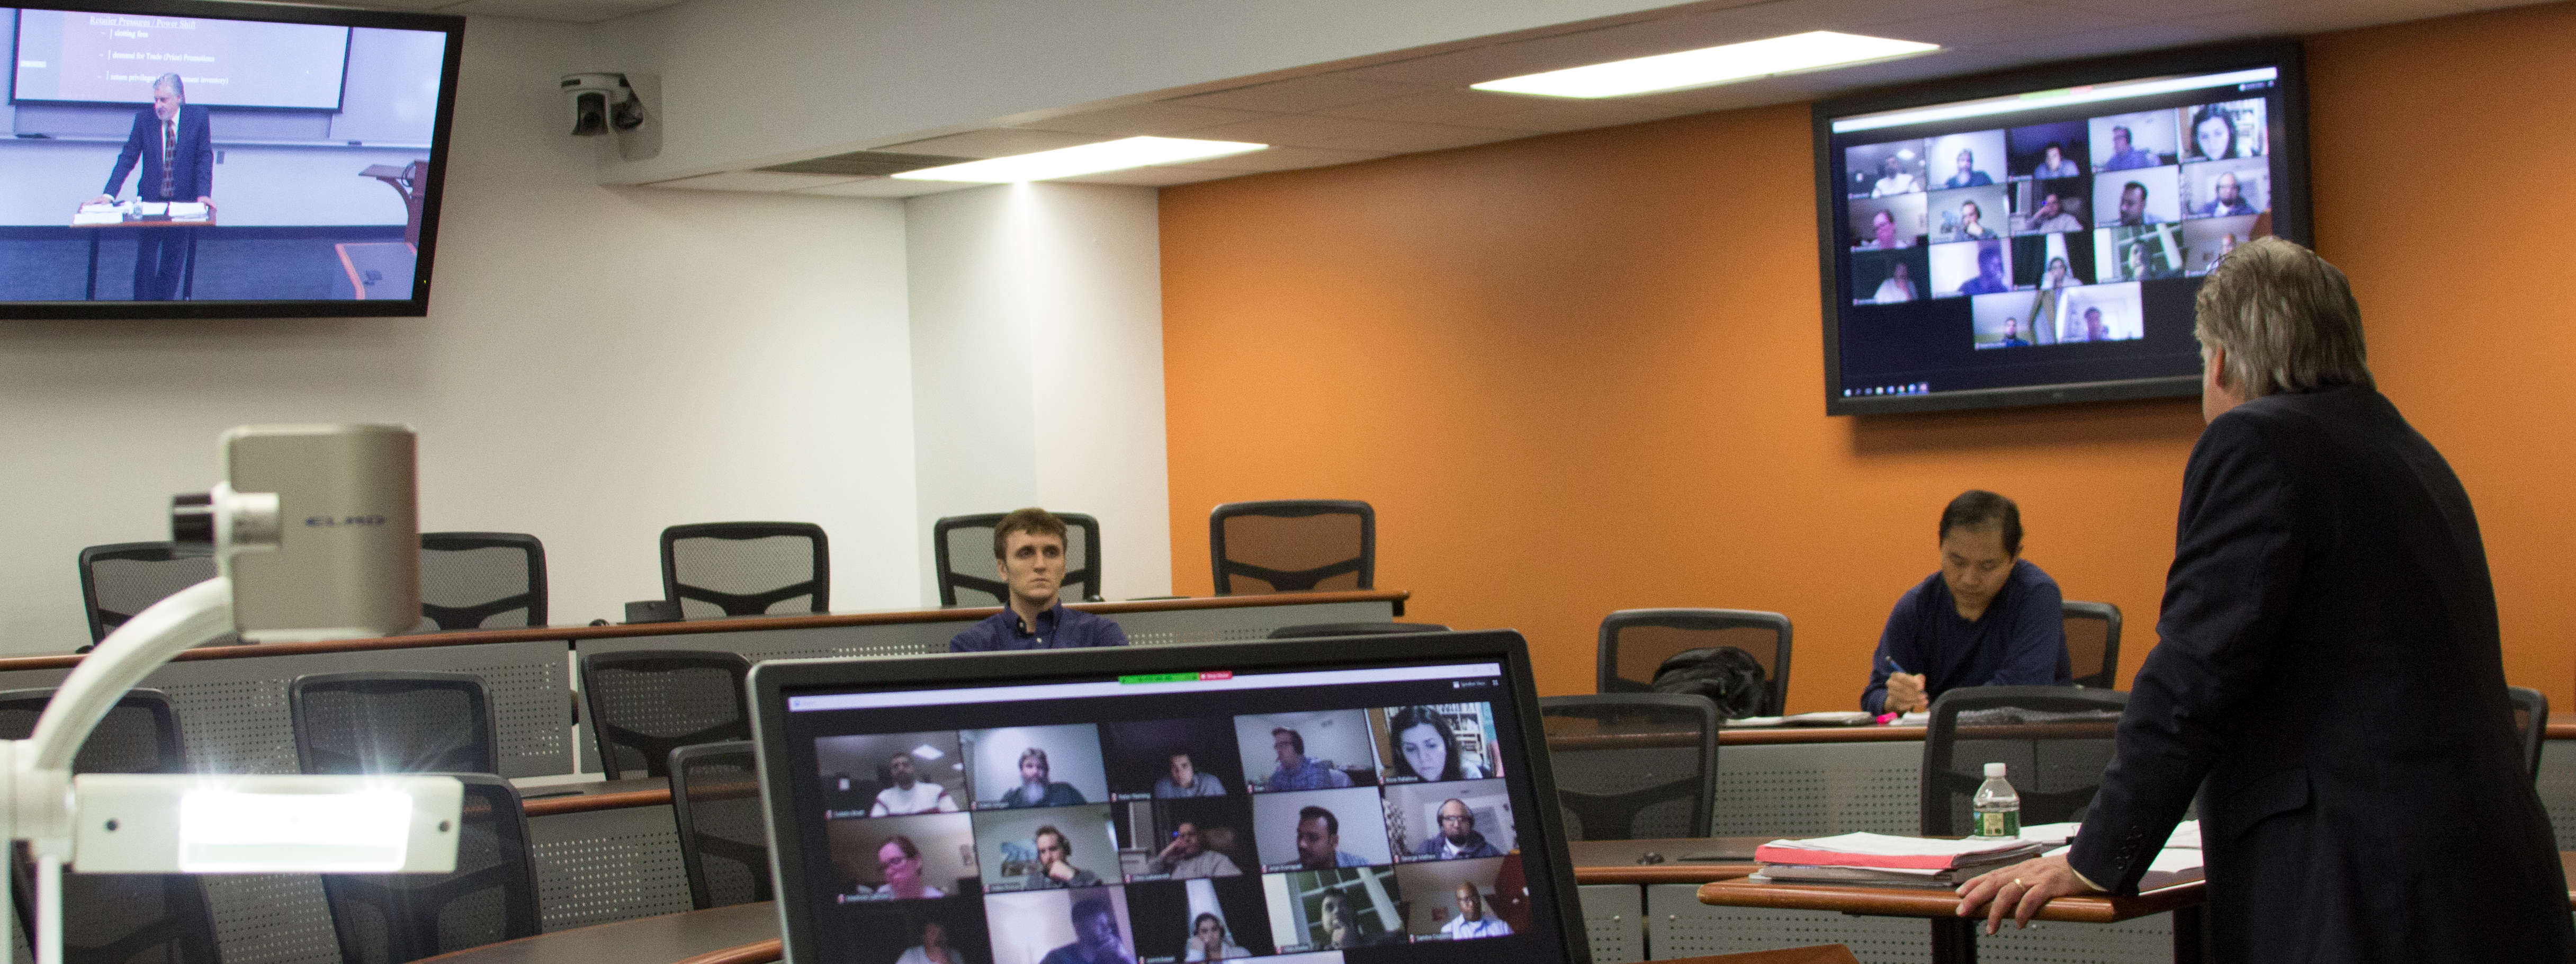 Instructor and students in the room viewing video feeds from students online